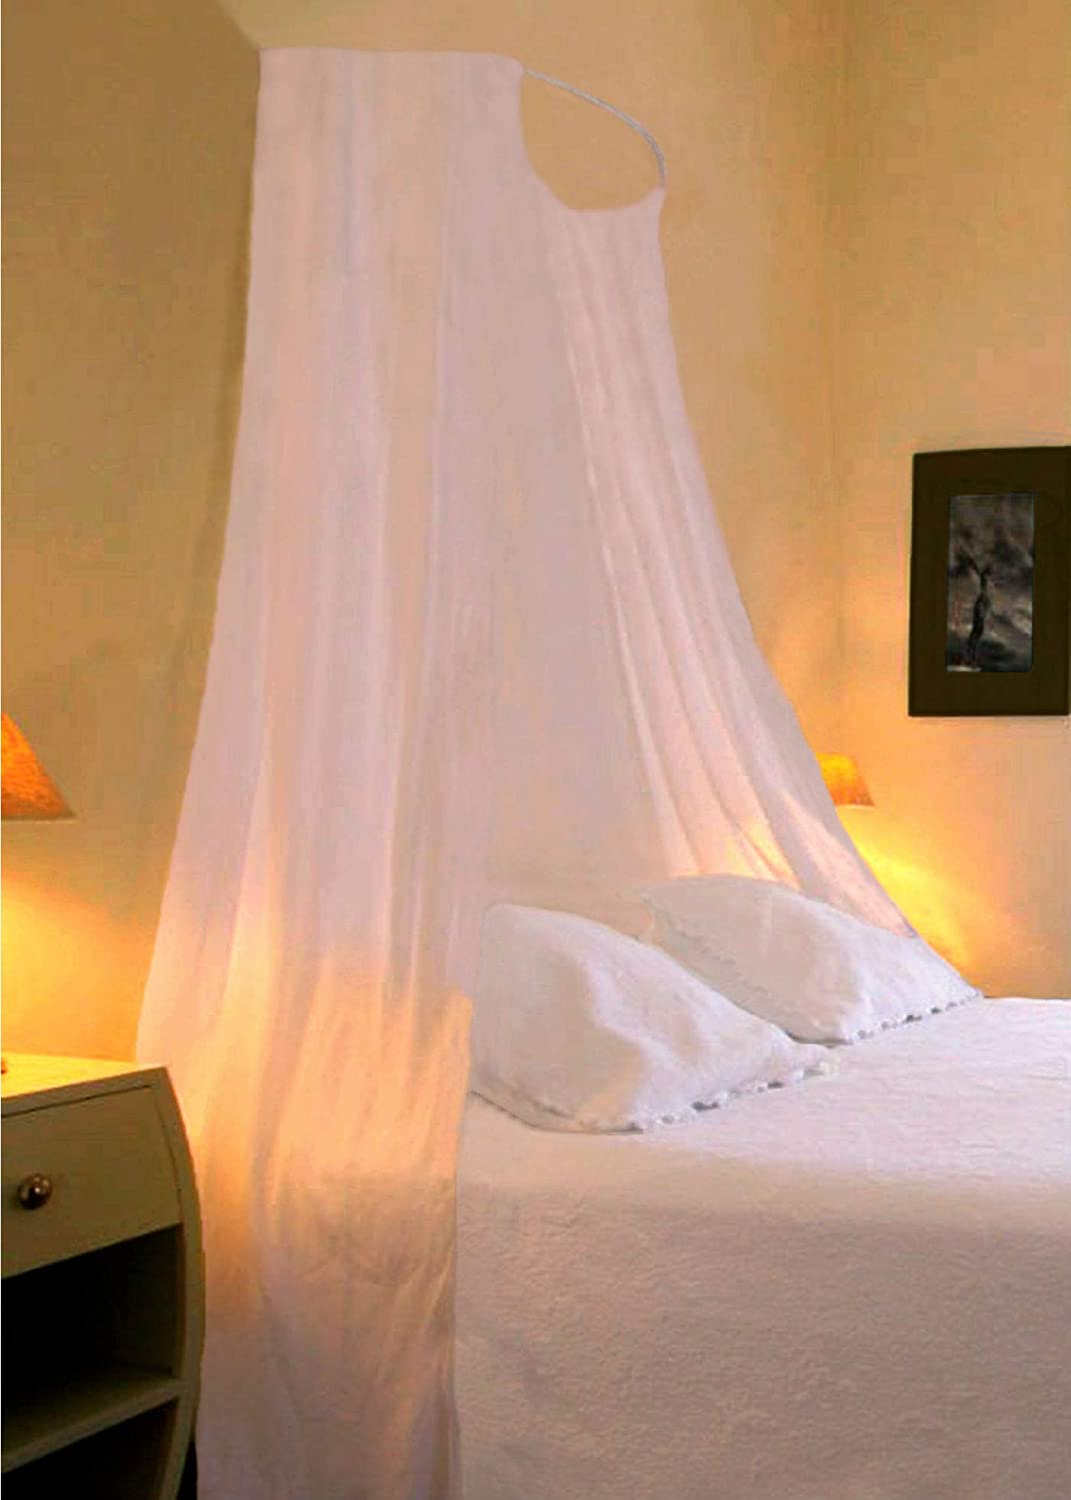 CREAM BED CANOPY SET Soft Sheer Pale Cream VOILE & Rod Fixing Kit COMPLETE EASY FIX Showpiece Curtains and Voiles